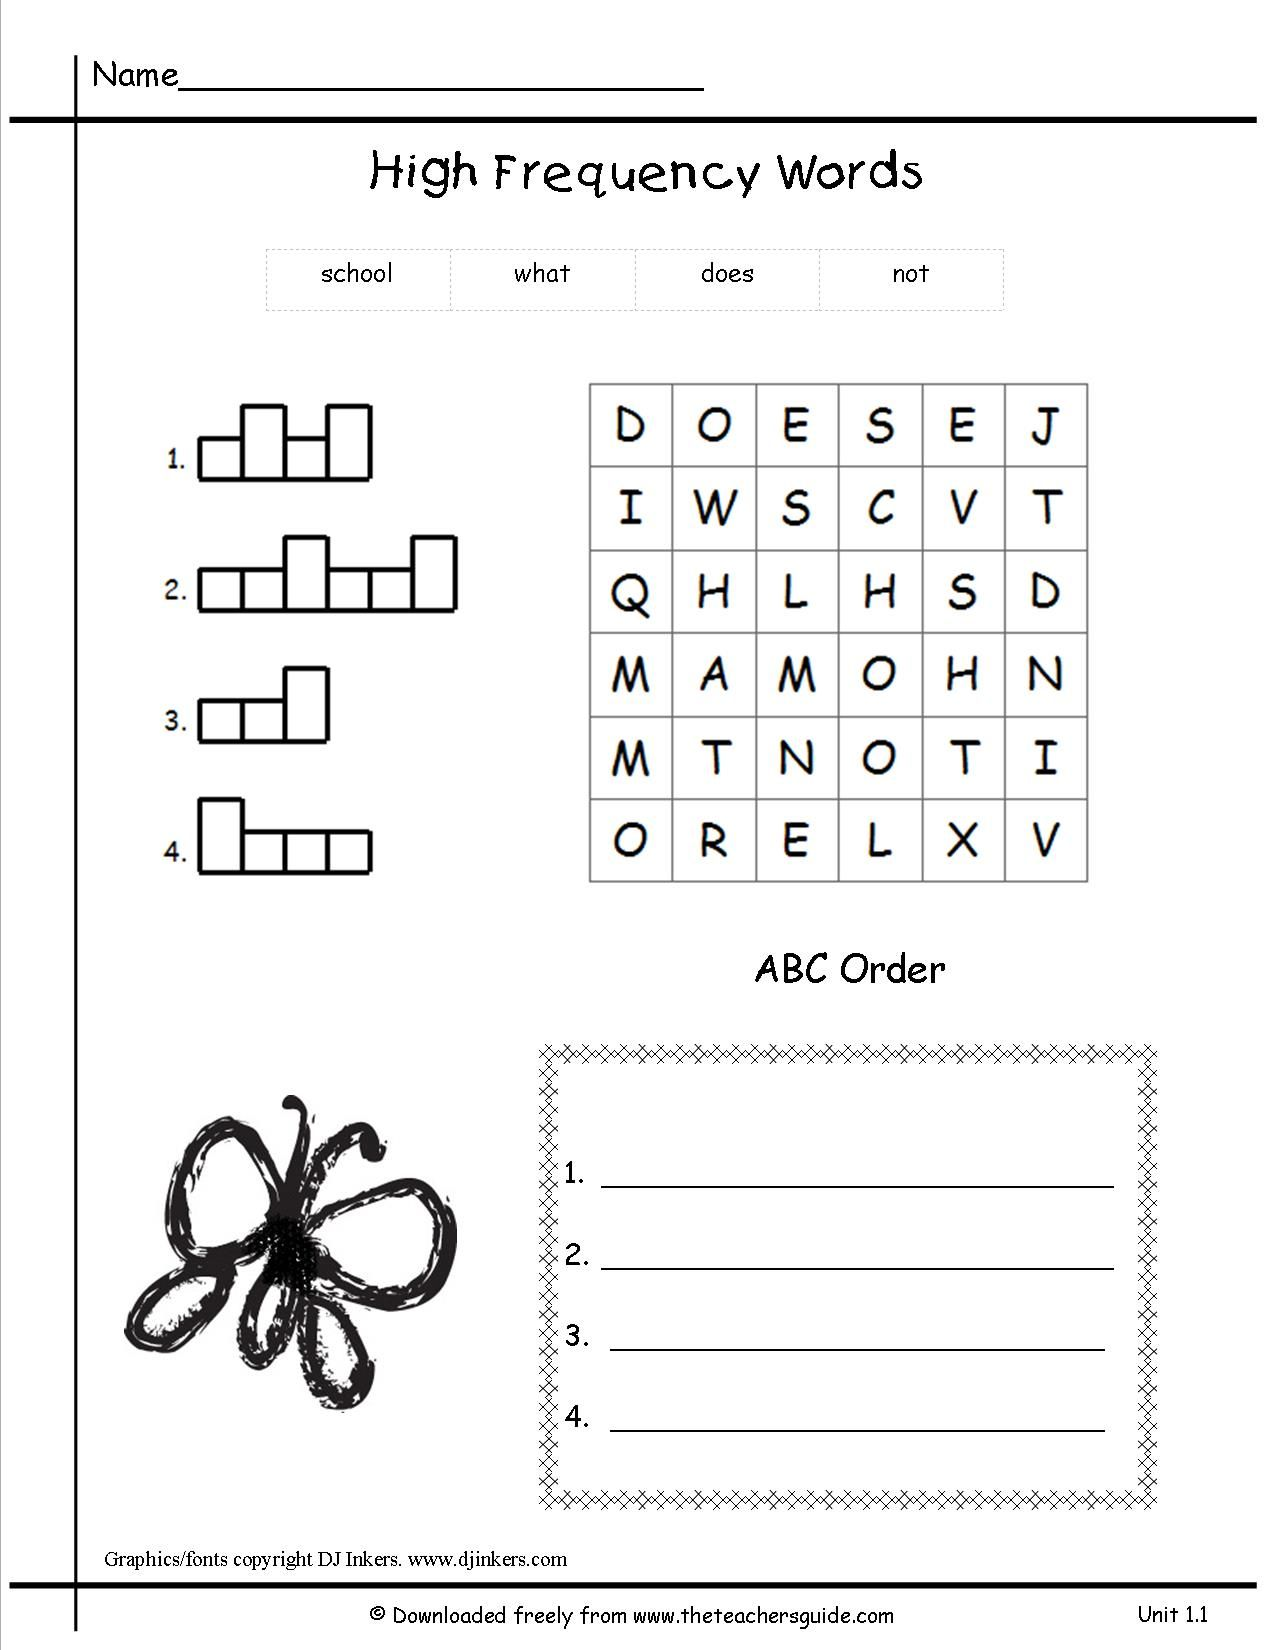 These worksheets would be good and they're free!